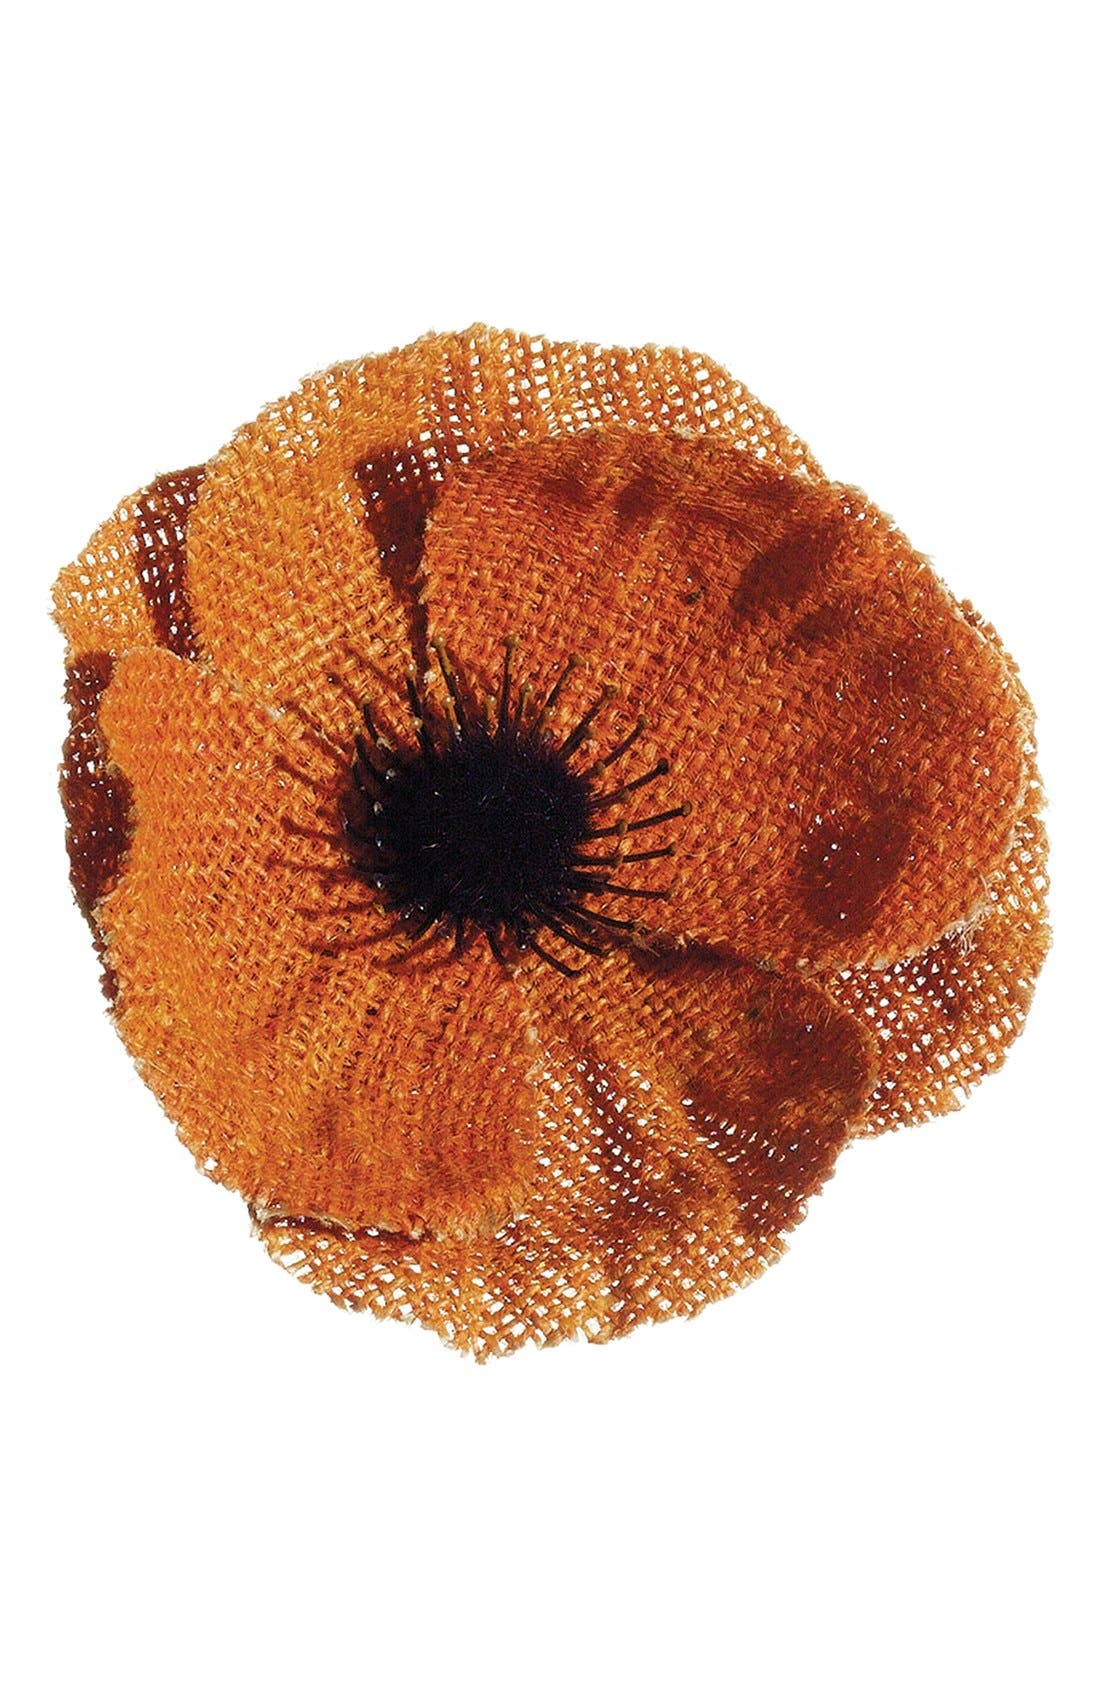 Main Image - ALLSTATE 'Poppy' Burlap Napkin Ring